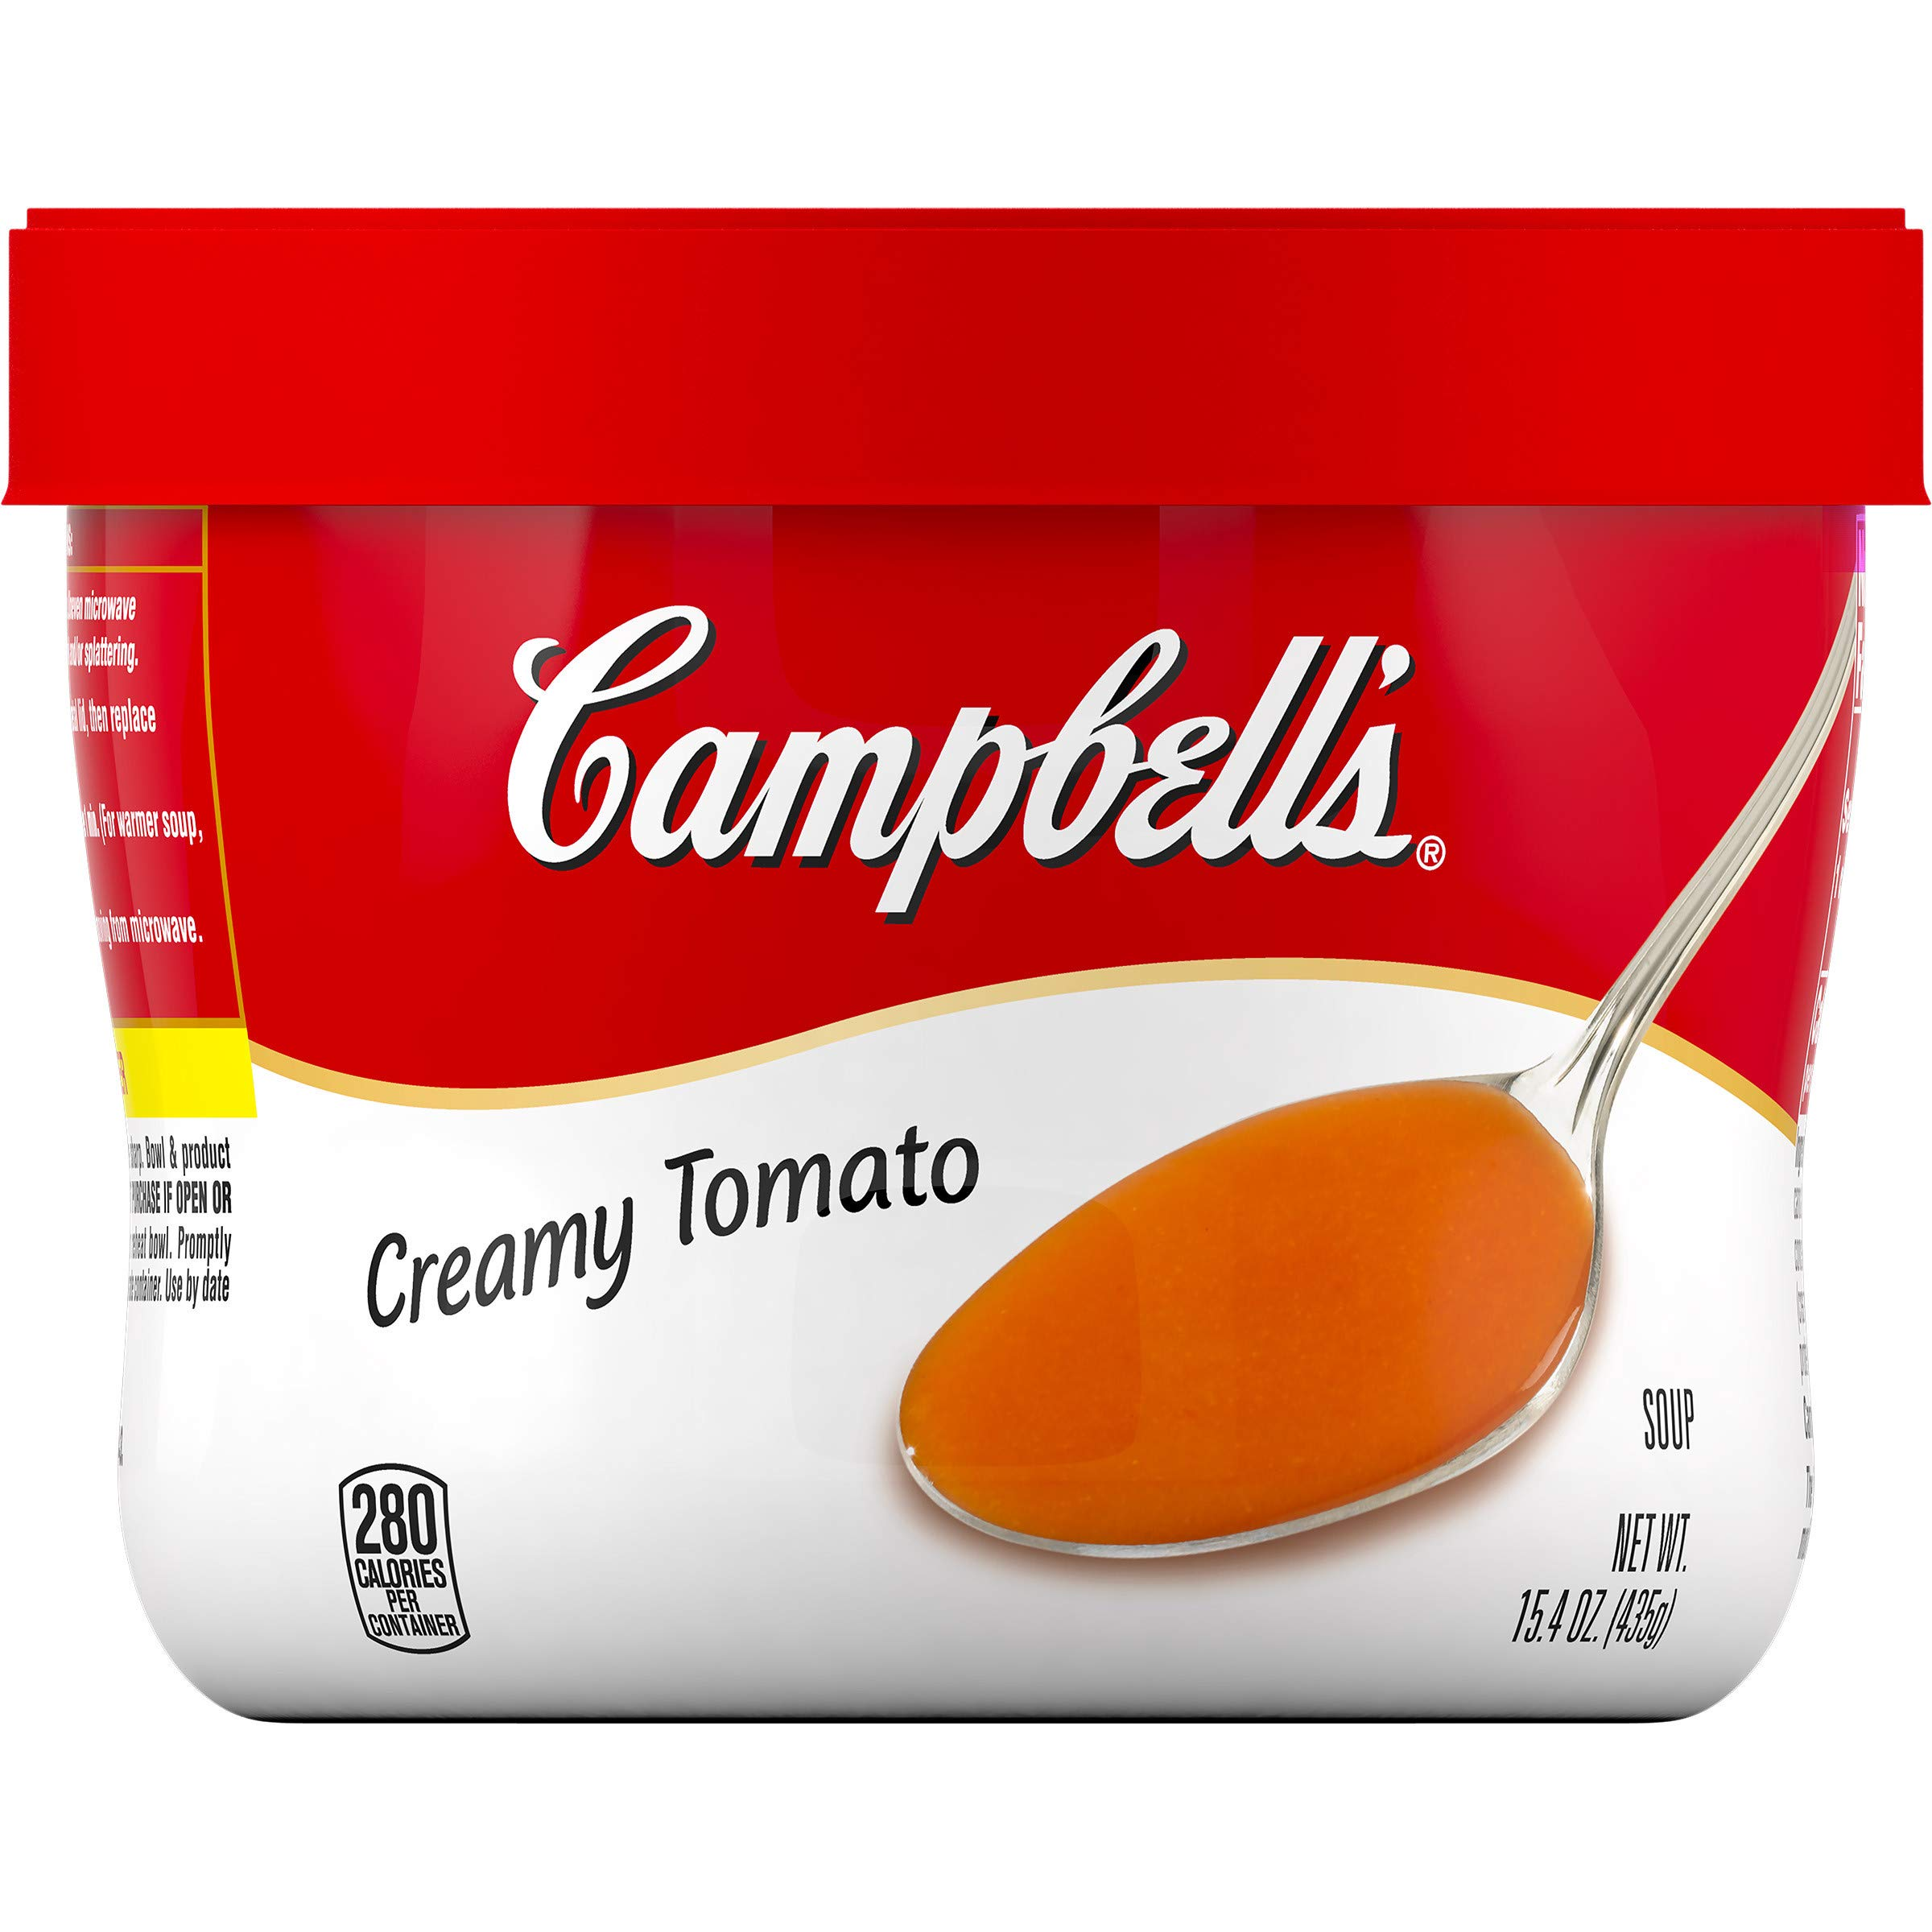 Campbell's Creamy Tomato Soup, Microwaveable Bowl, 15.4 oz by Campbell's